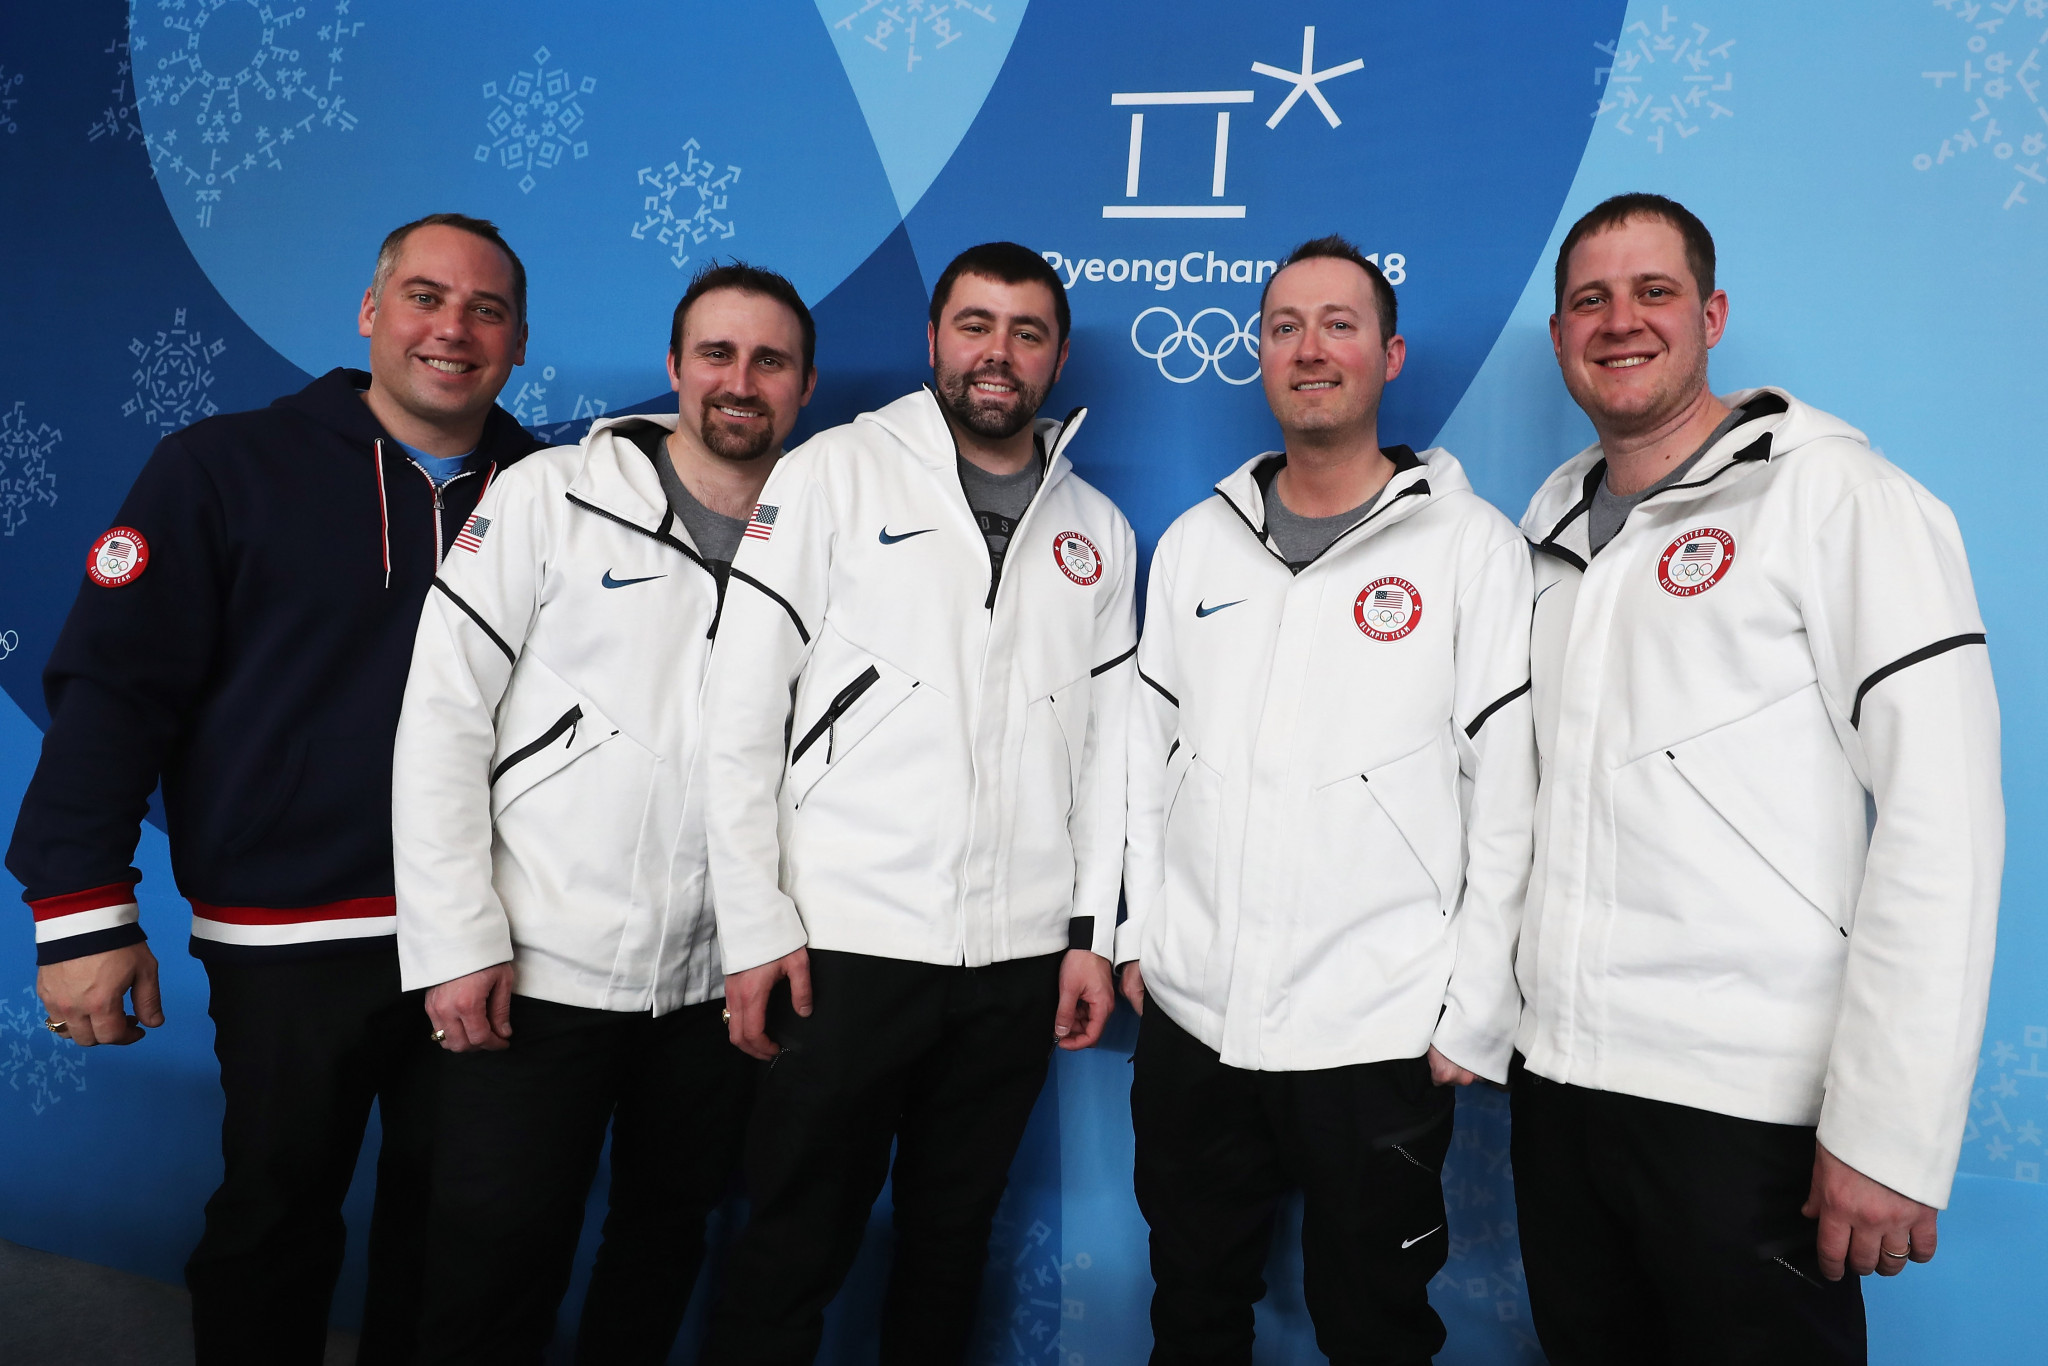 Phill Drobnick, left, guided America to the men's curling Olympic gold medal at Pyeongchang ©Getty Images